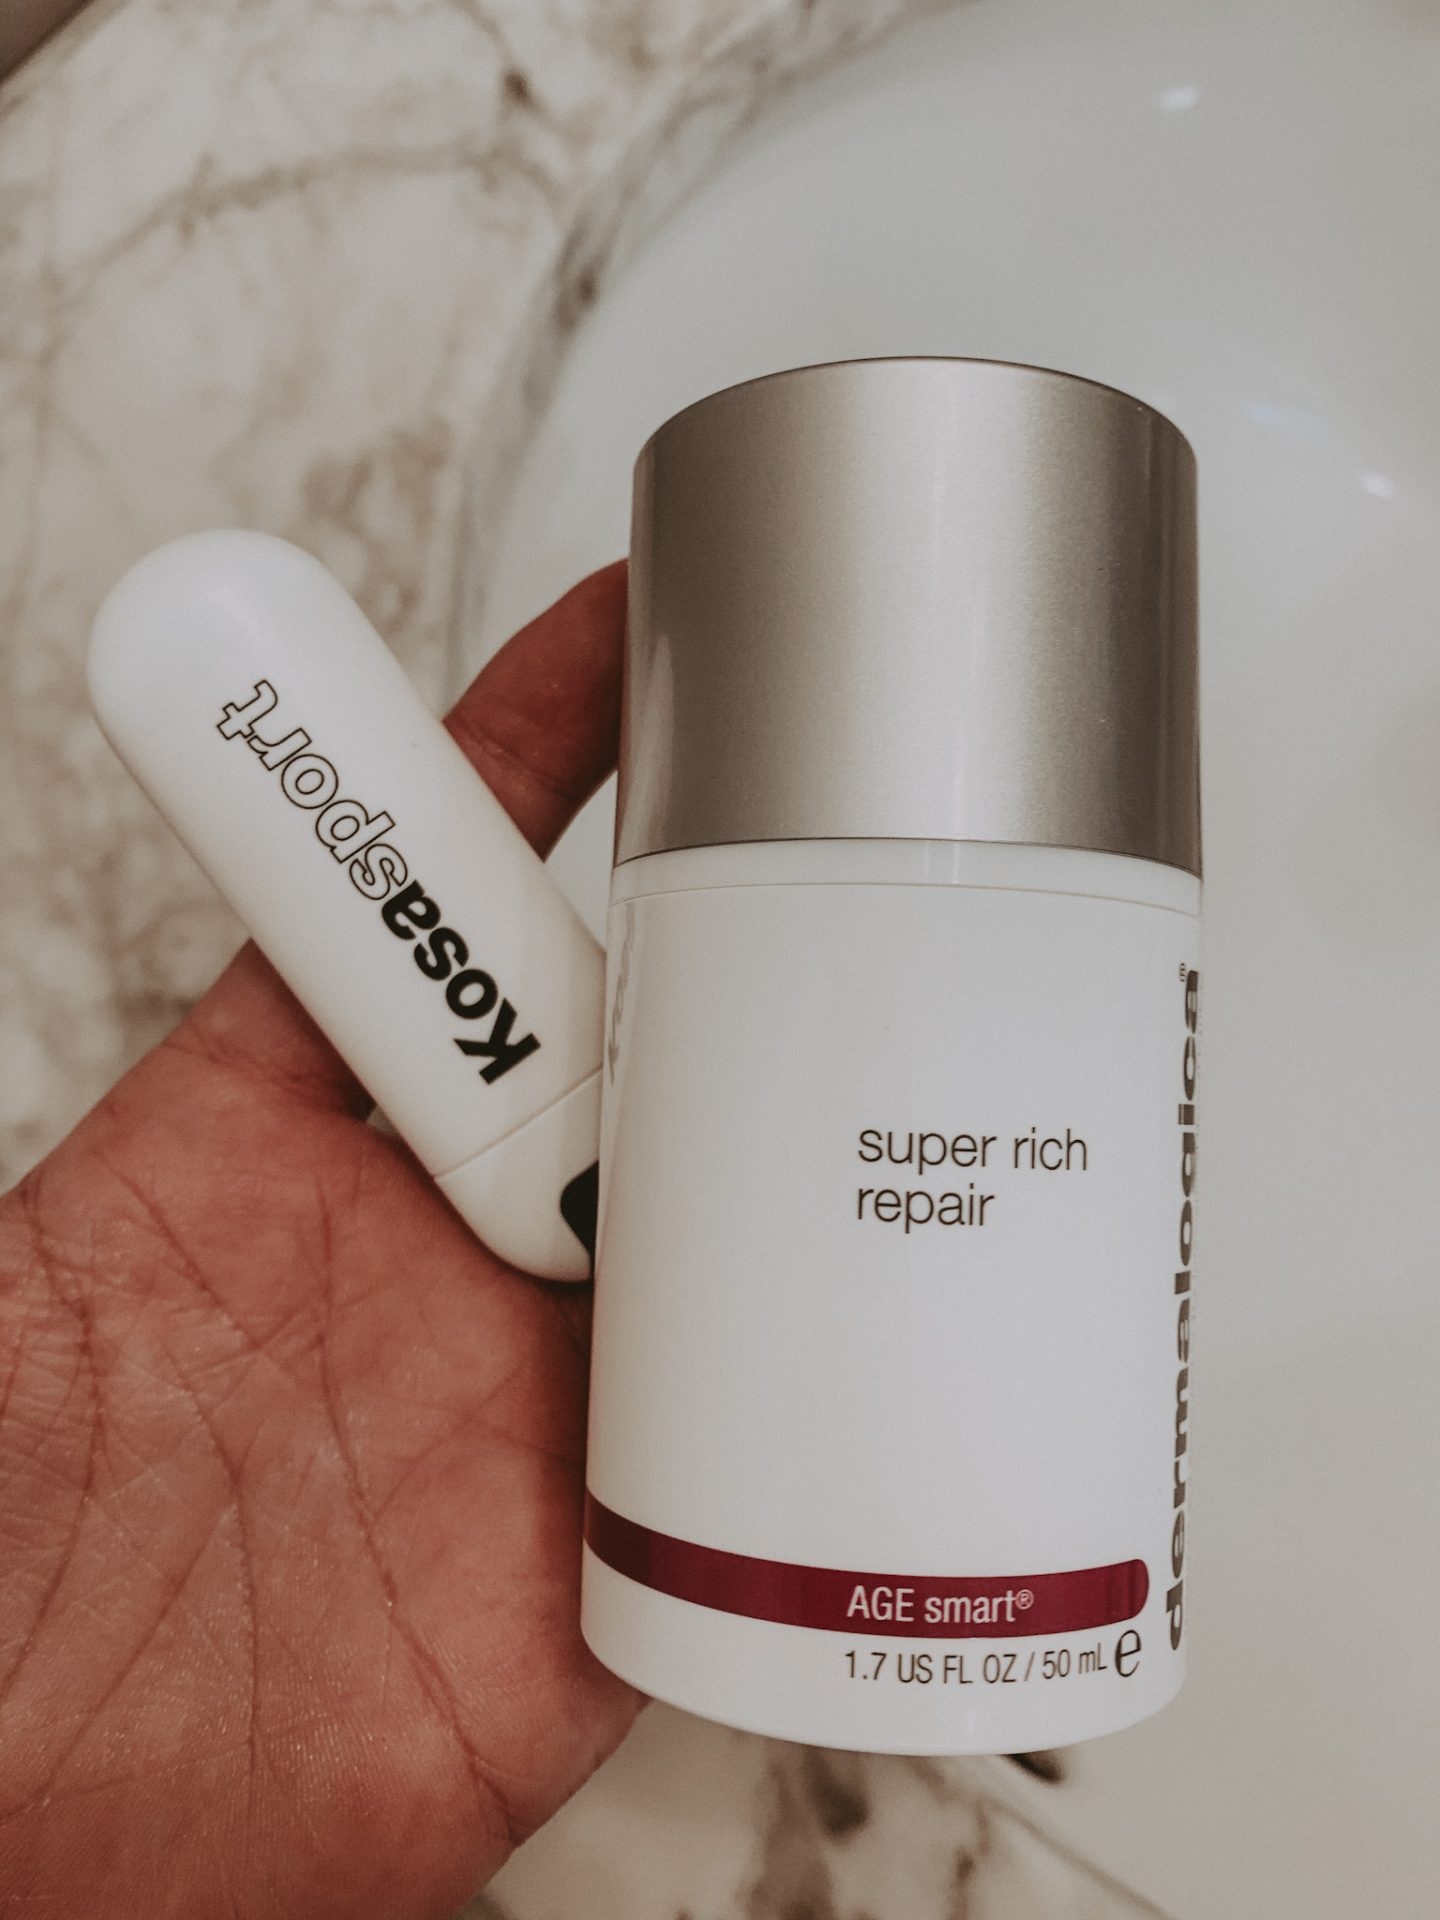 dermalogica products cathclaire blog